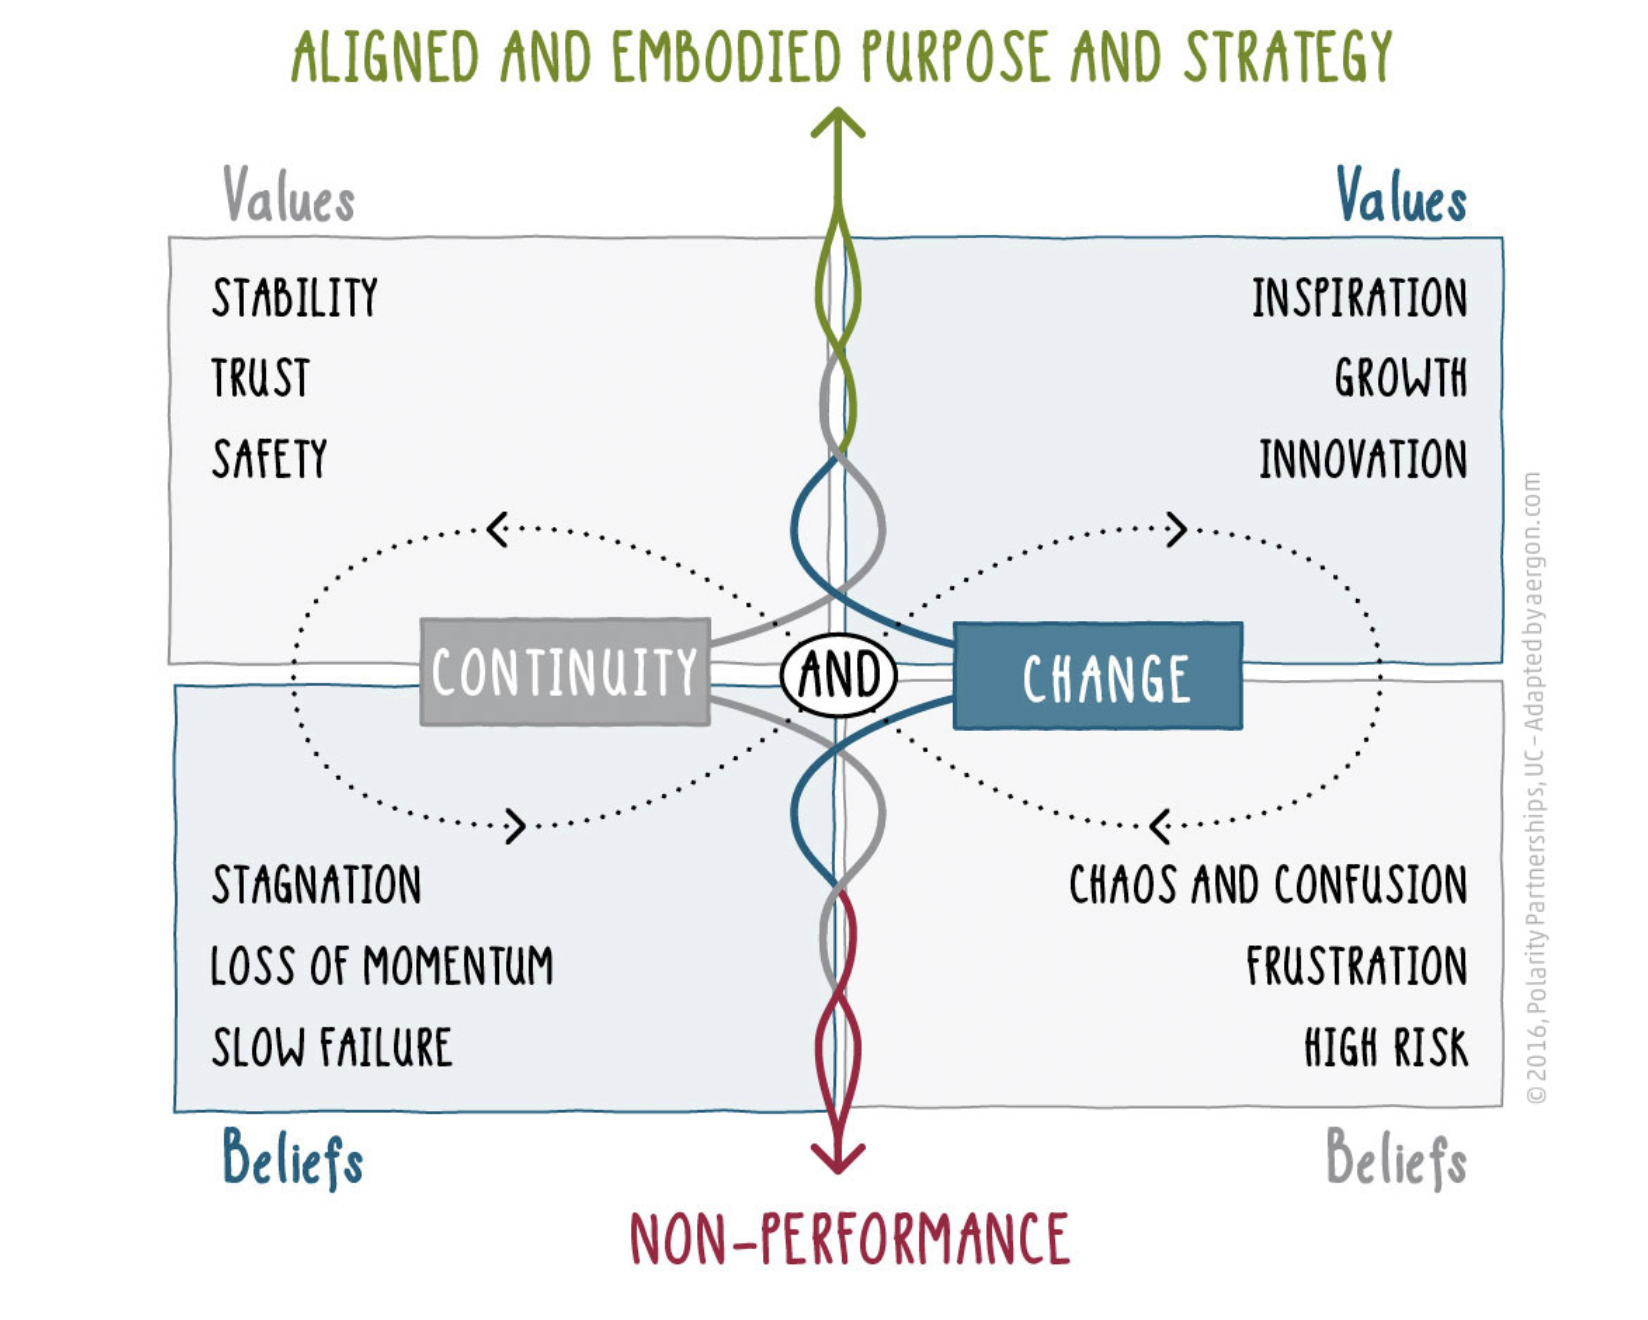 Aligned and embodied purpose and strategy